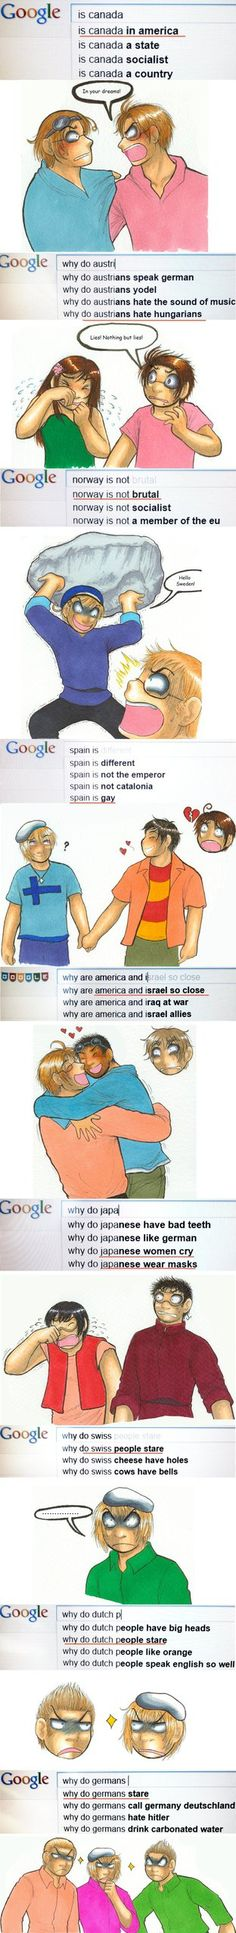 Haha , but Canada IS in America. America is a continent, not a frucking country.<<<Thank you(well I see why we call it America because USA is as you all may know stands for United States of America so they just take the last part)